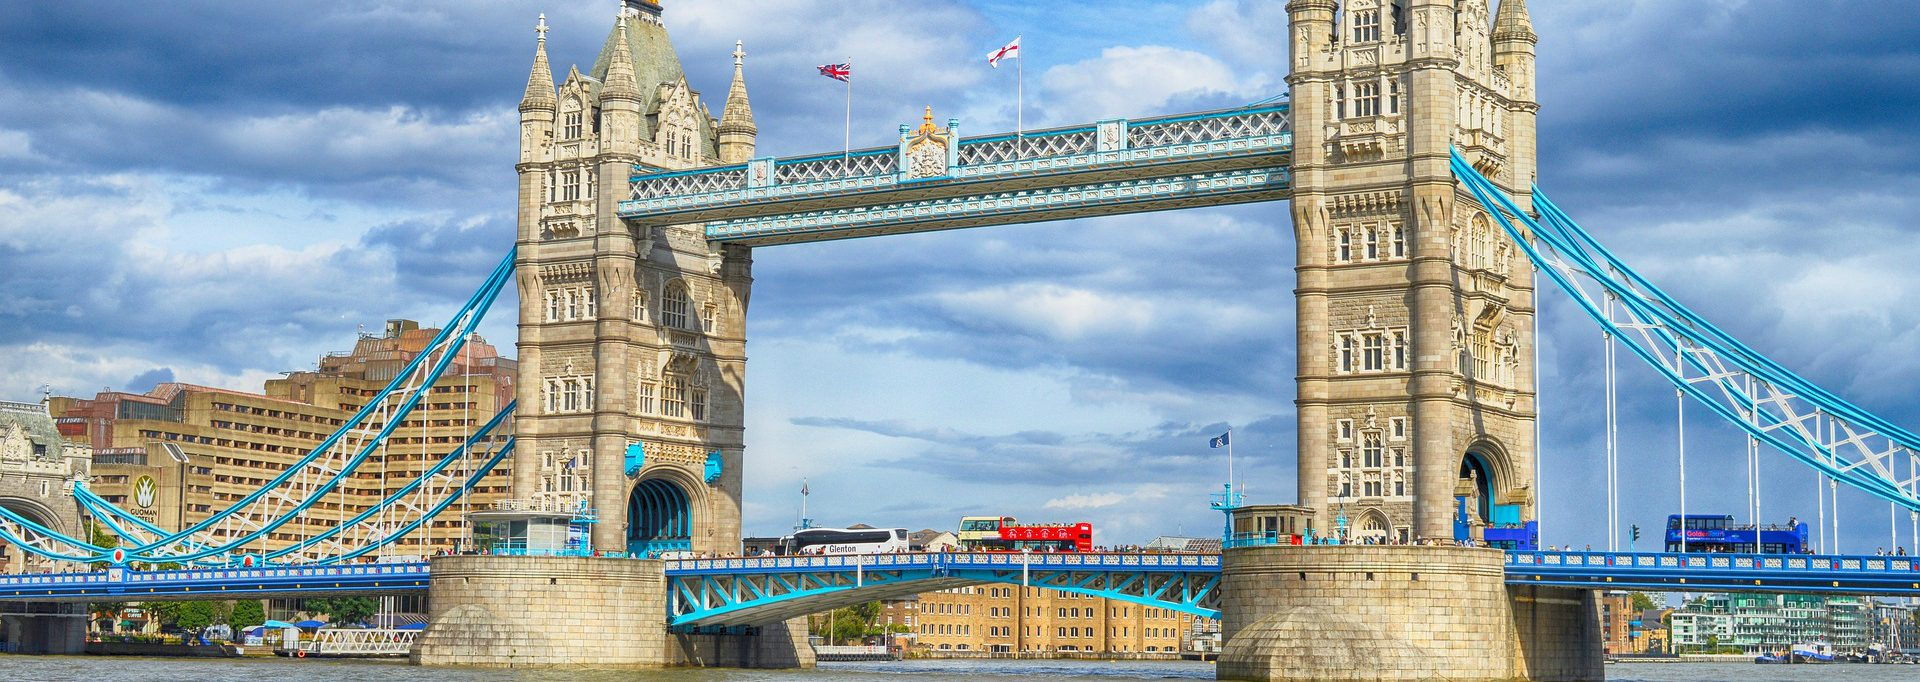 Top Free Things To Do In London Tower Bridge